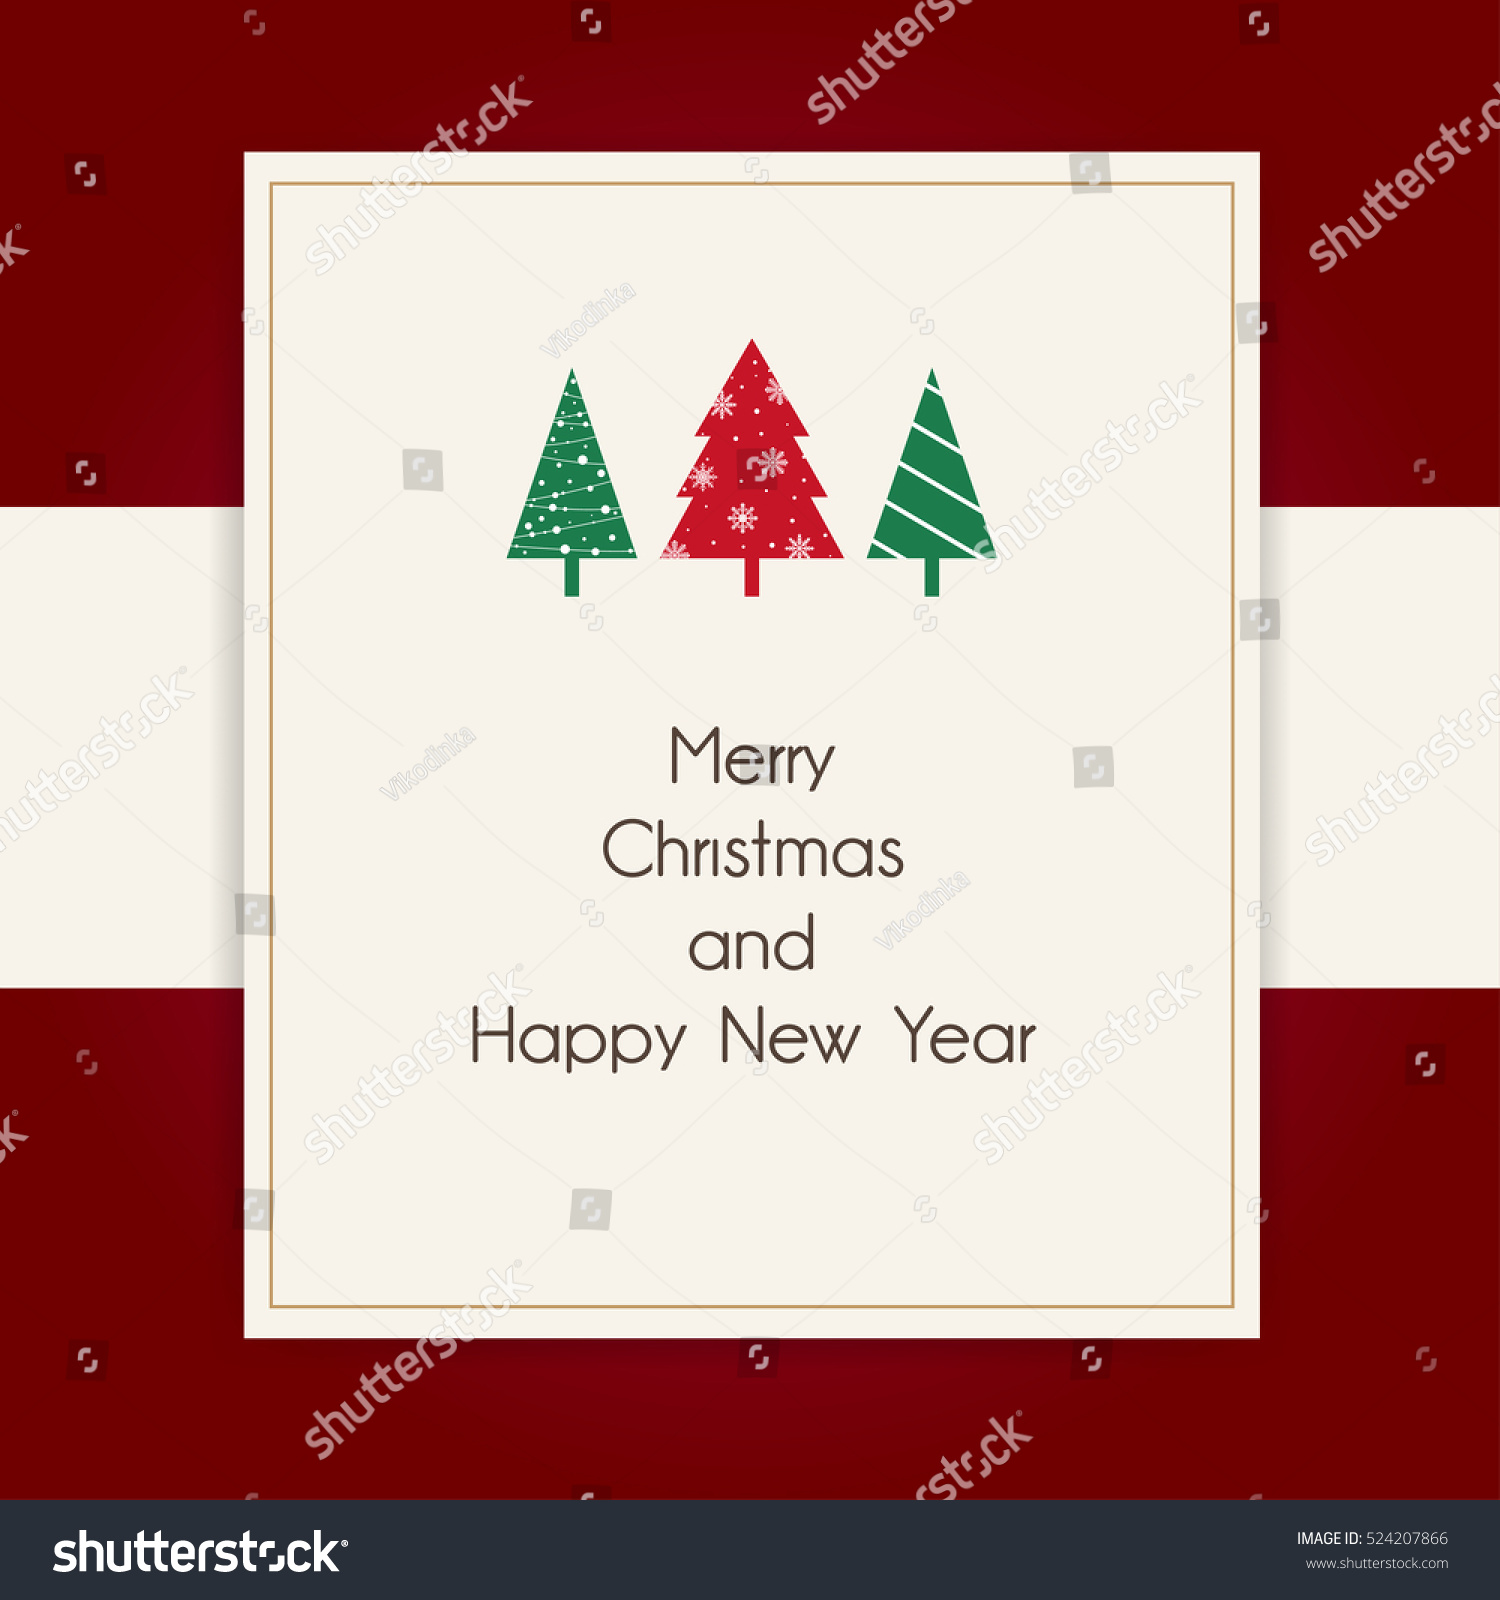 Greetings Merry Christmas Happy New Year Stock Vector (Royalty Free ...